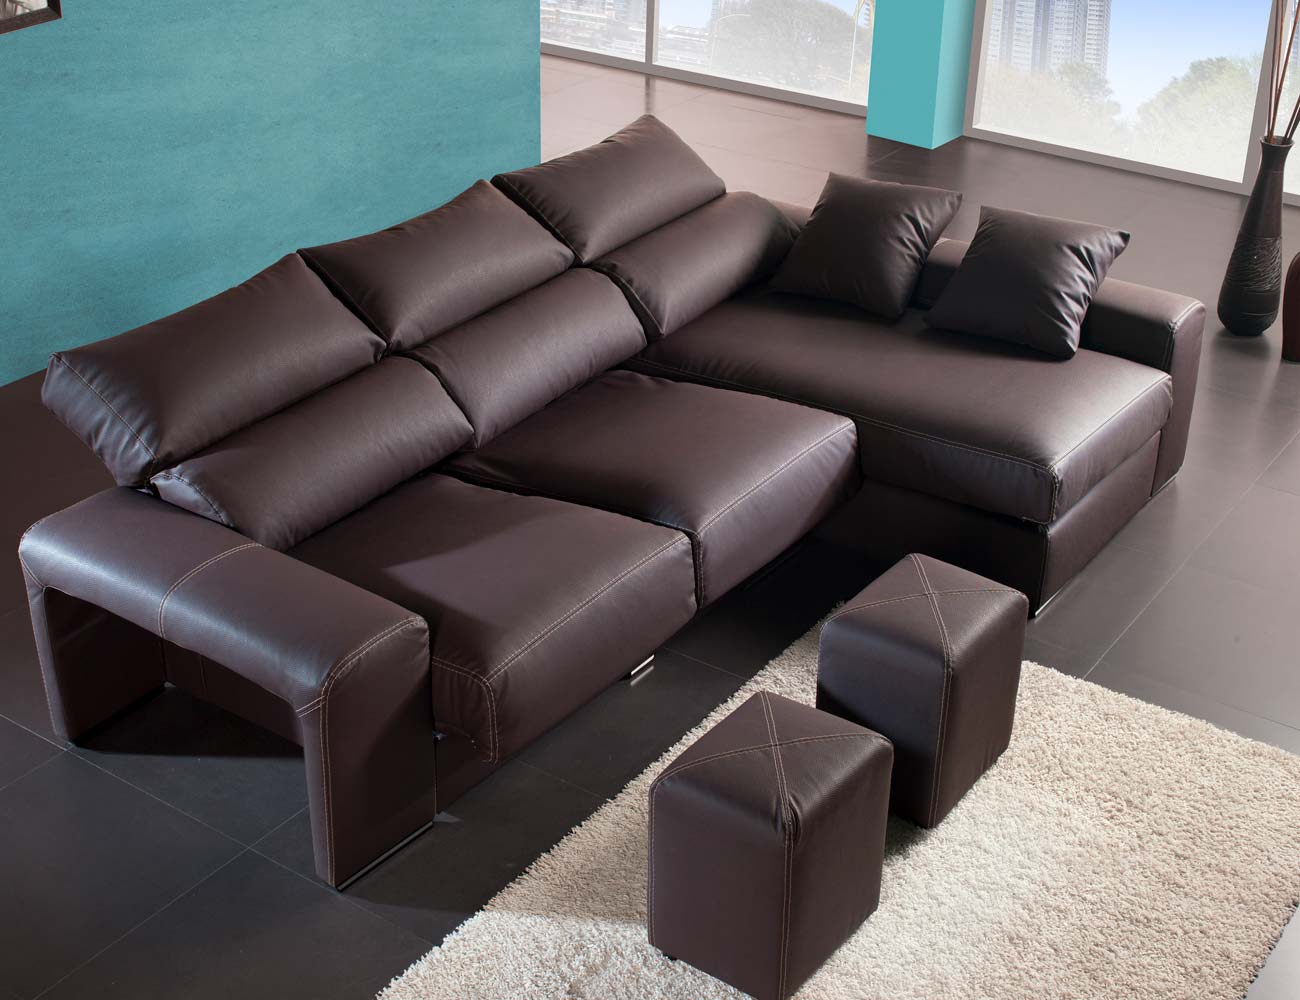 Sofa chaiselongue moderno polipiel chocolate poufs taburetes22